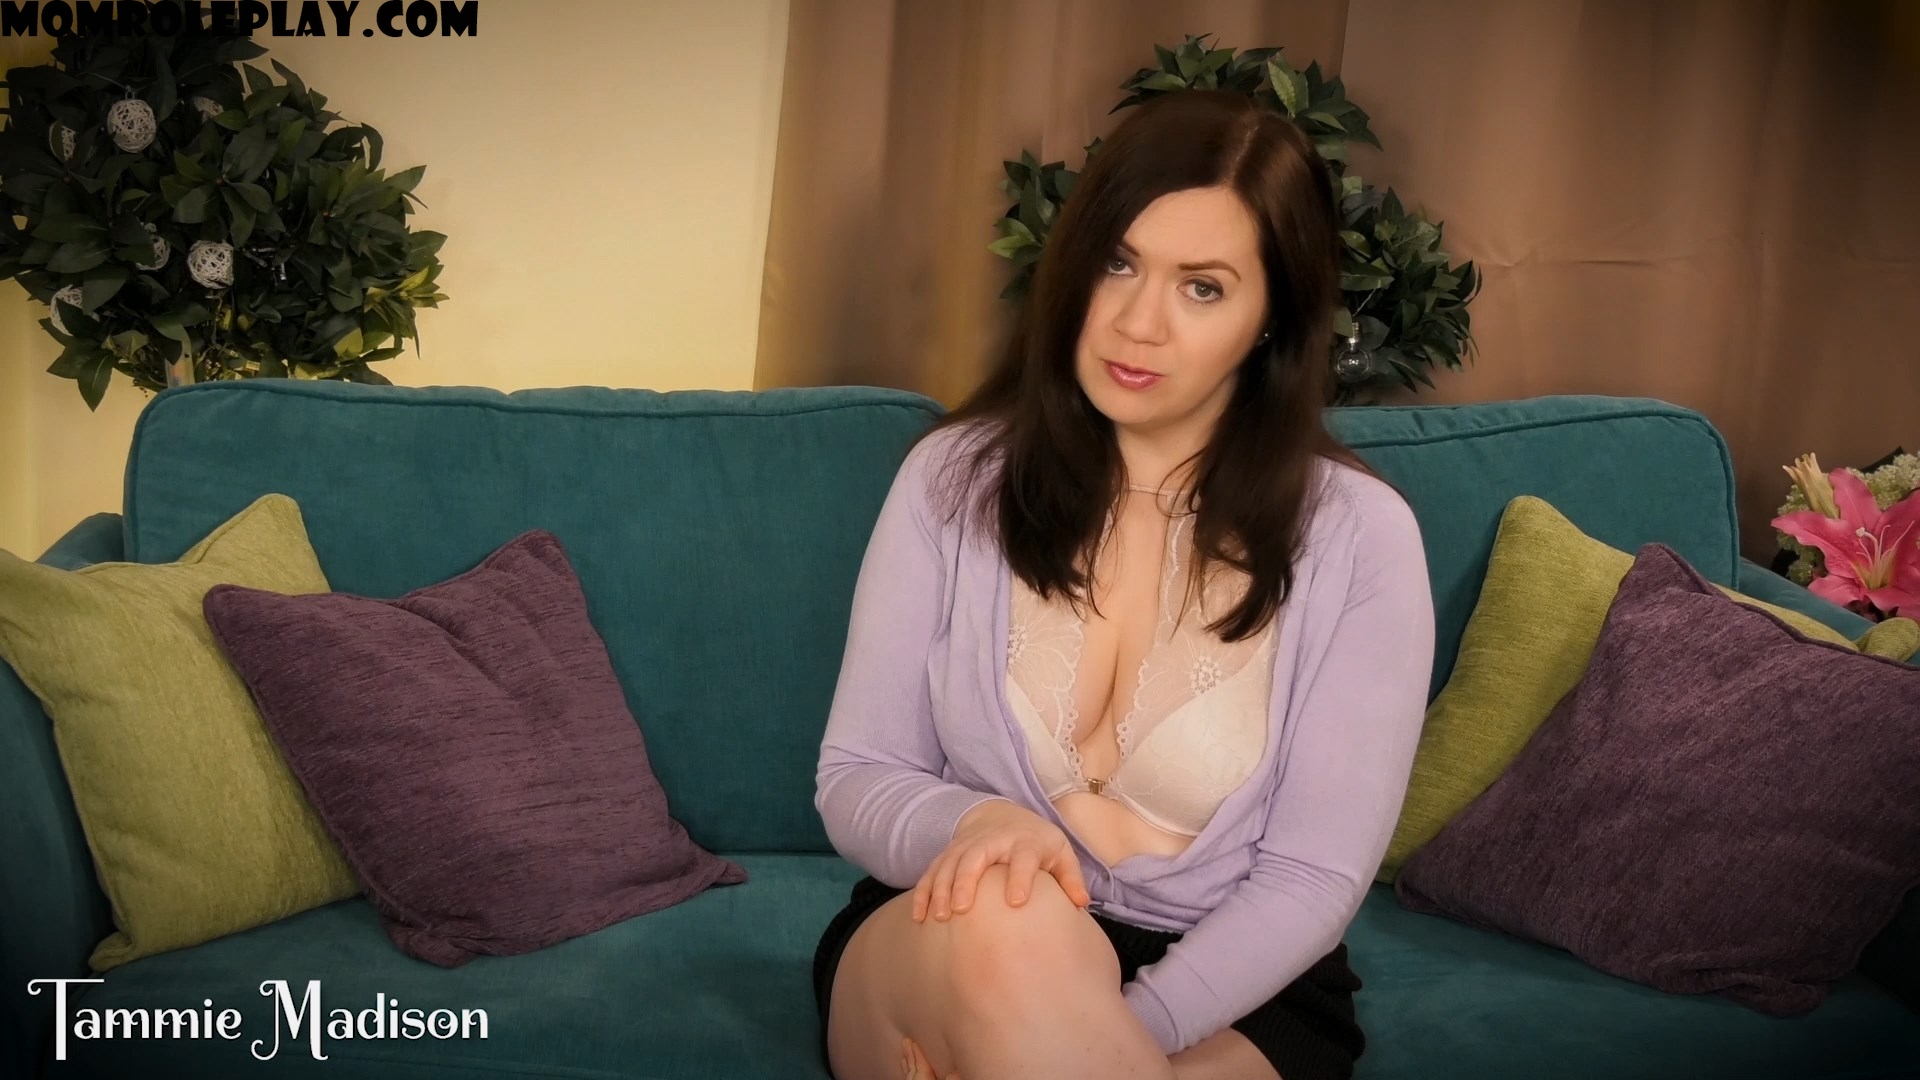 Tammie Madison - Mommy Knows Best 1080p